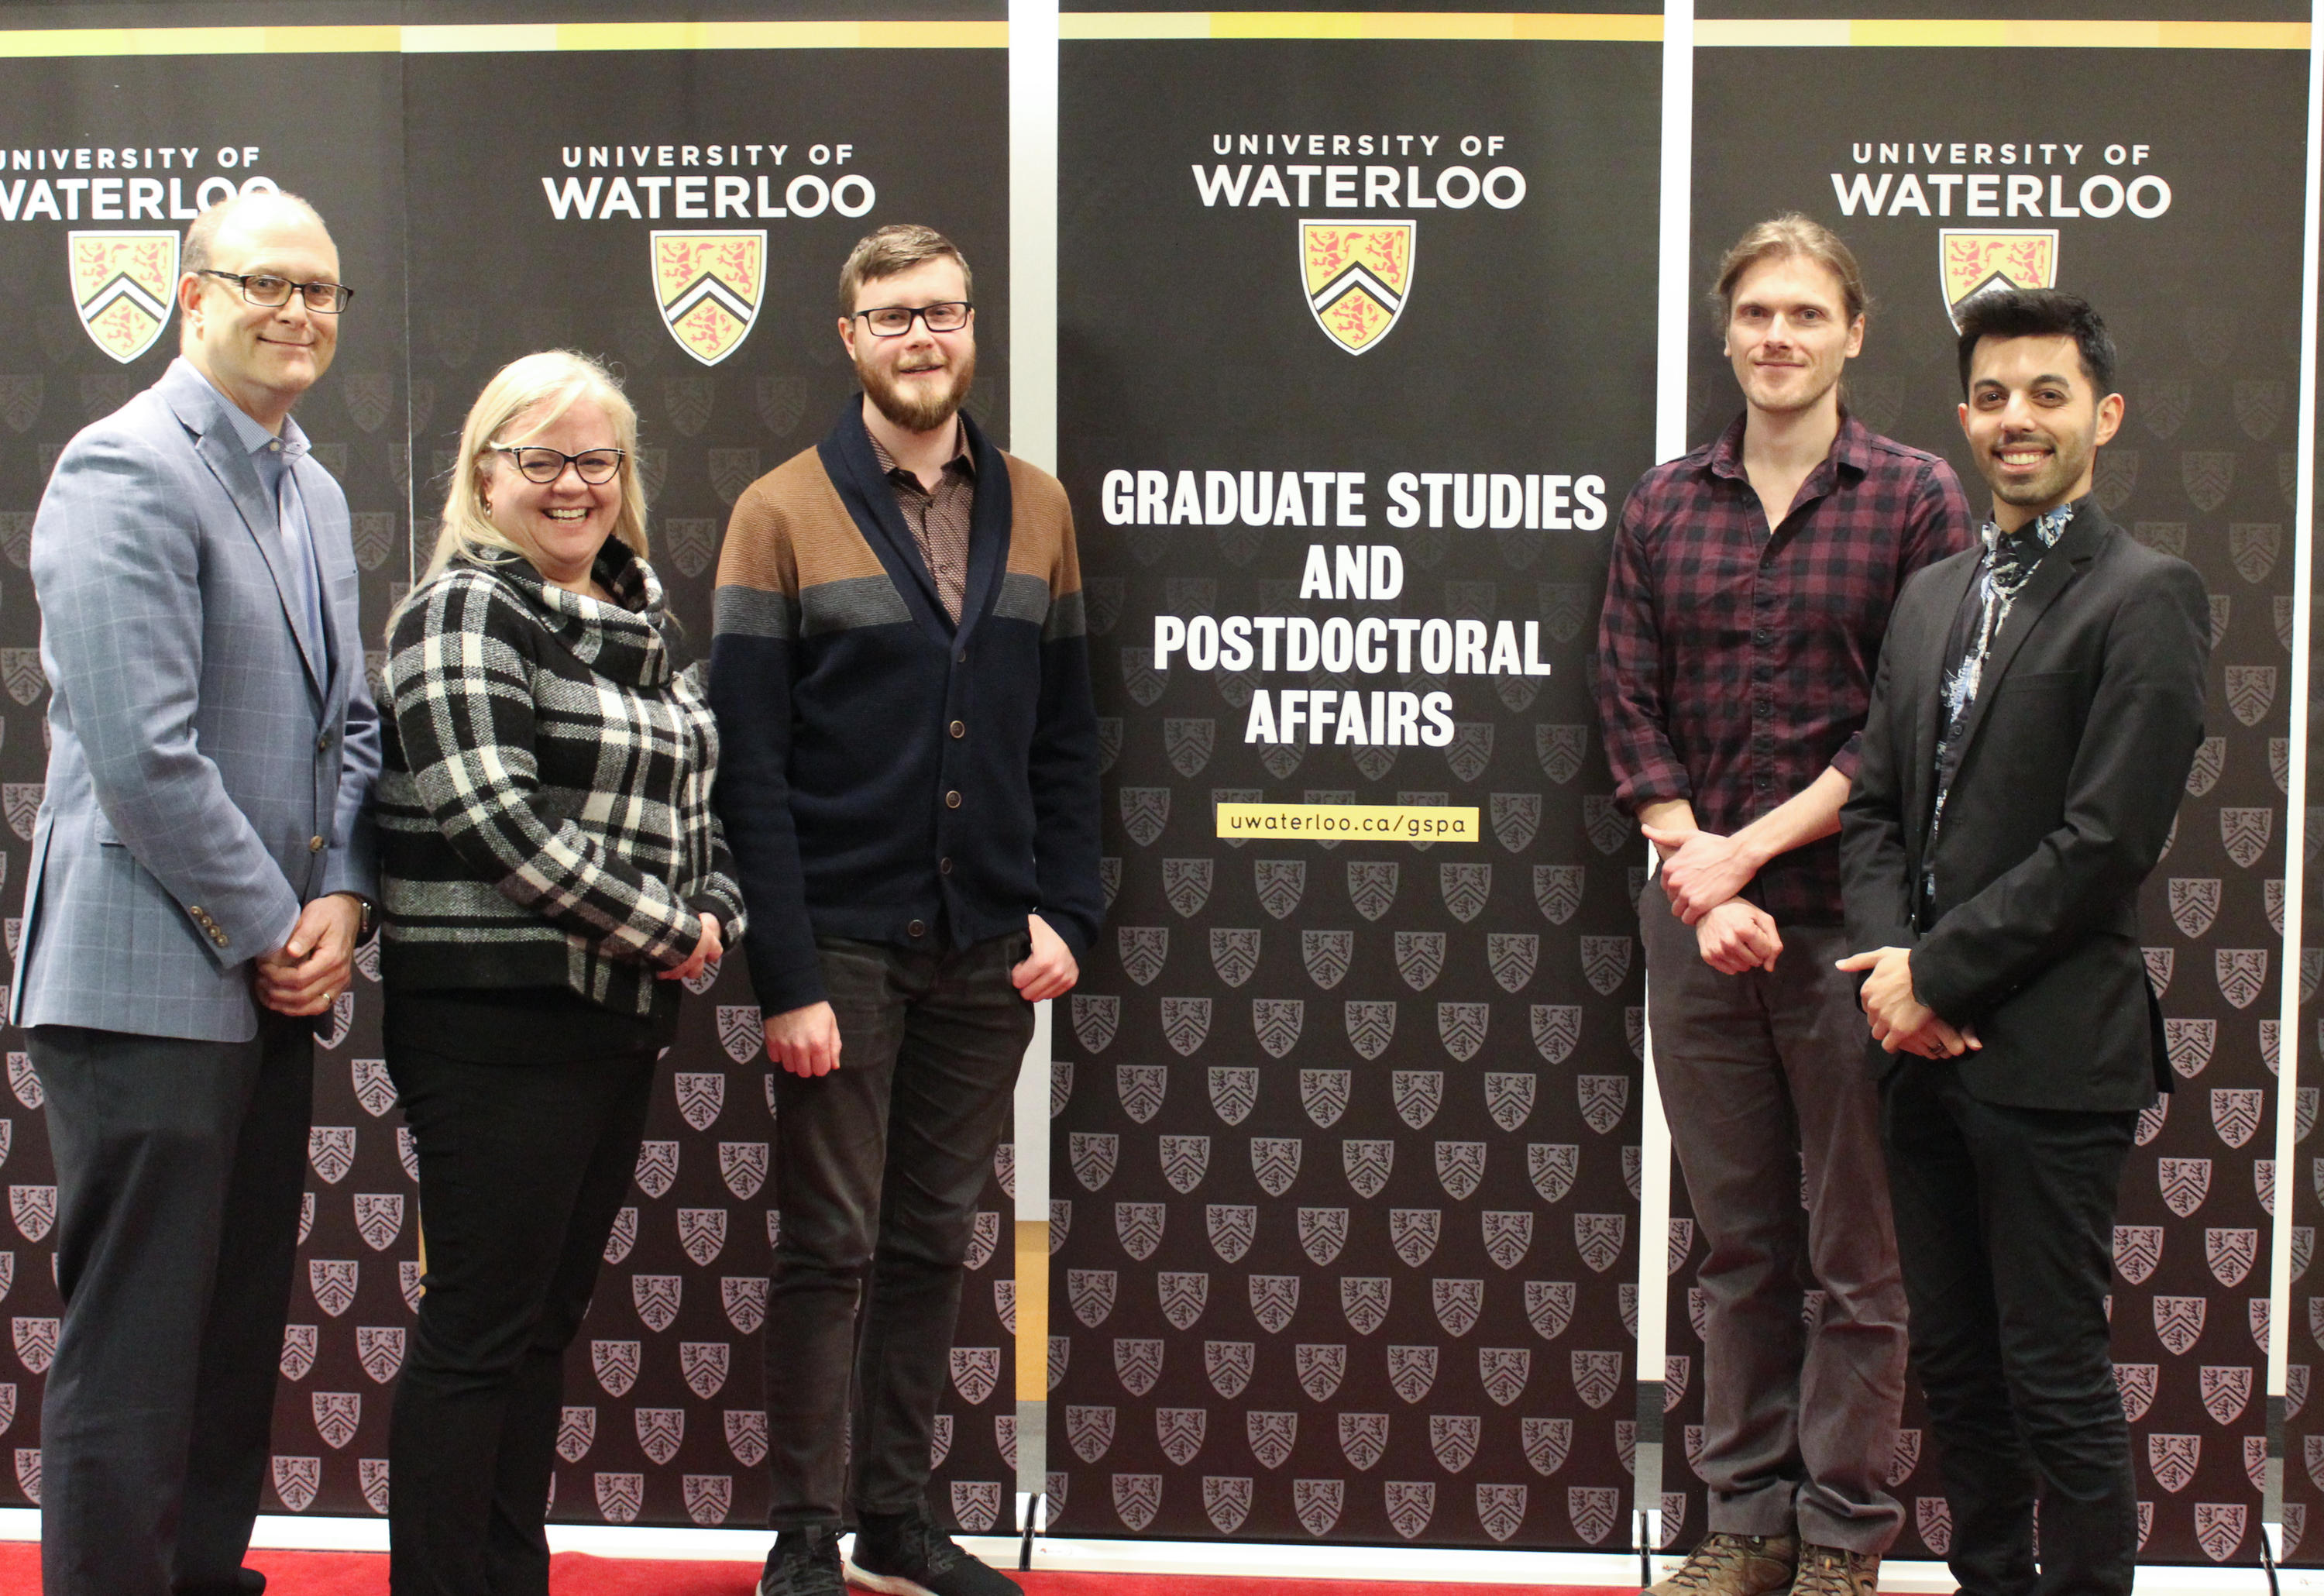 The GRADflix winners pose on the red carpet